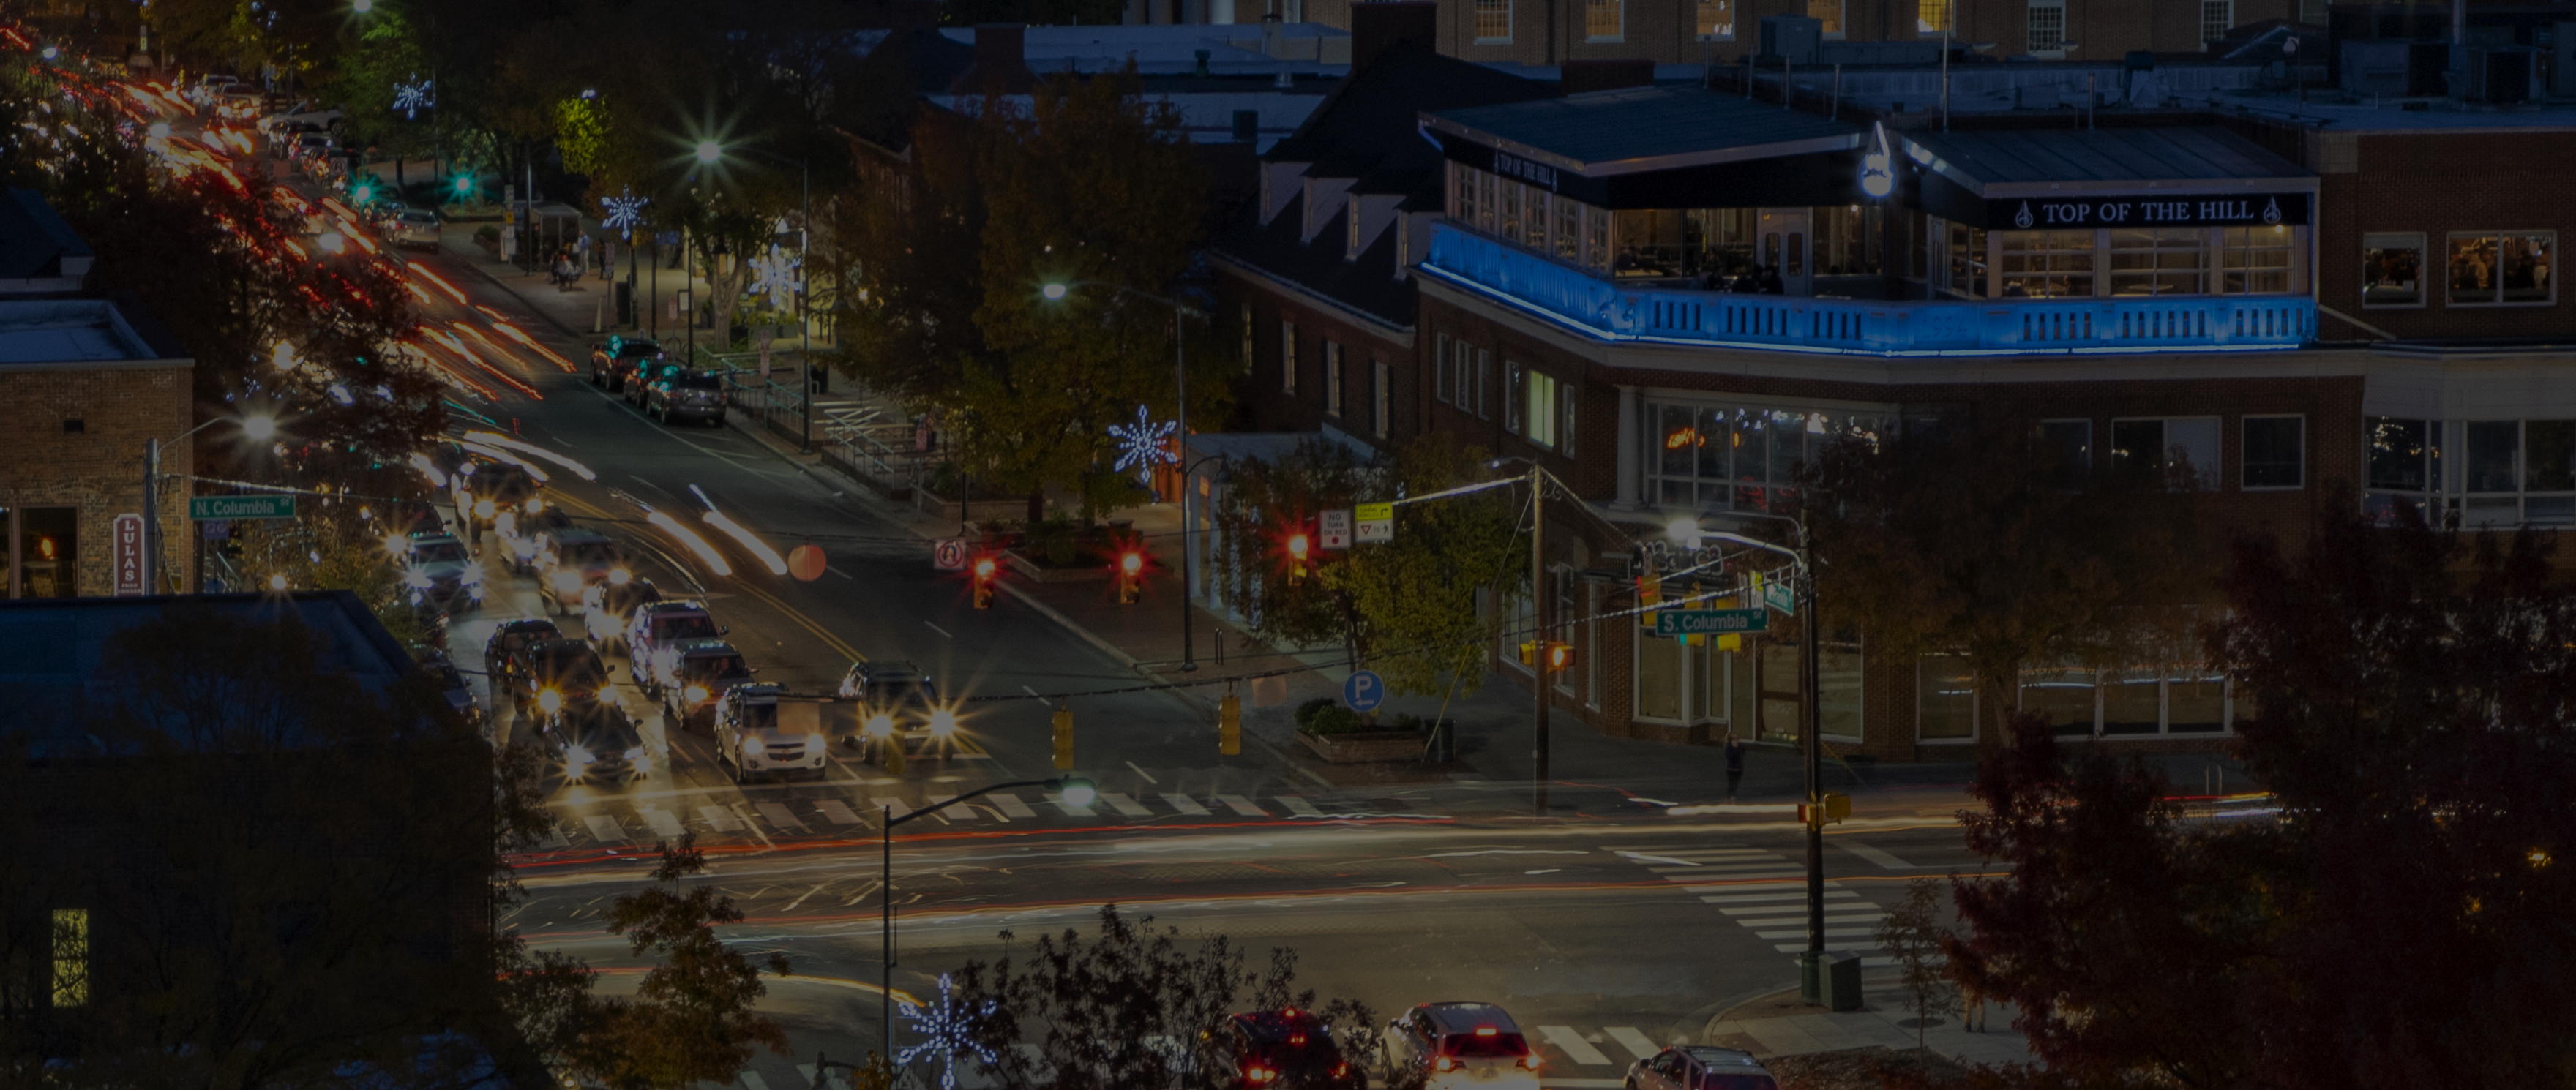 Evening traffic traveling through Downtown Chapel Hill.